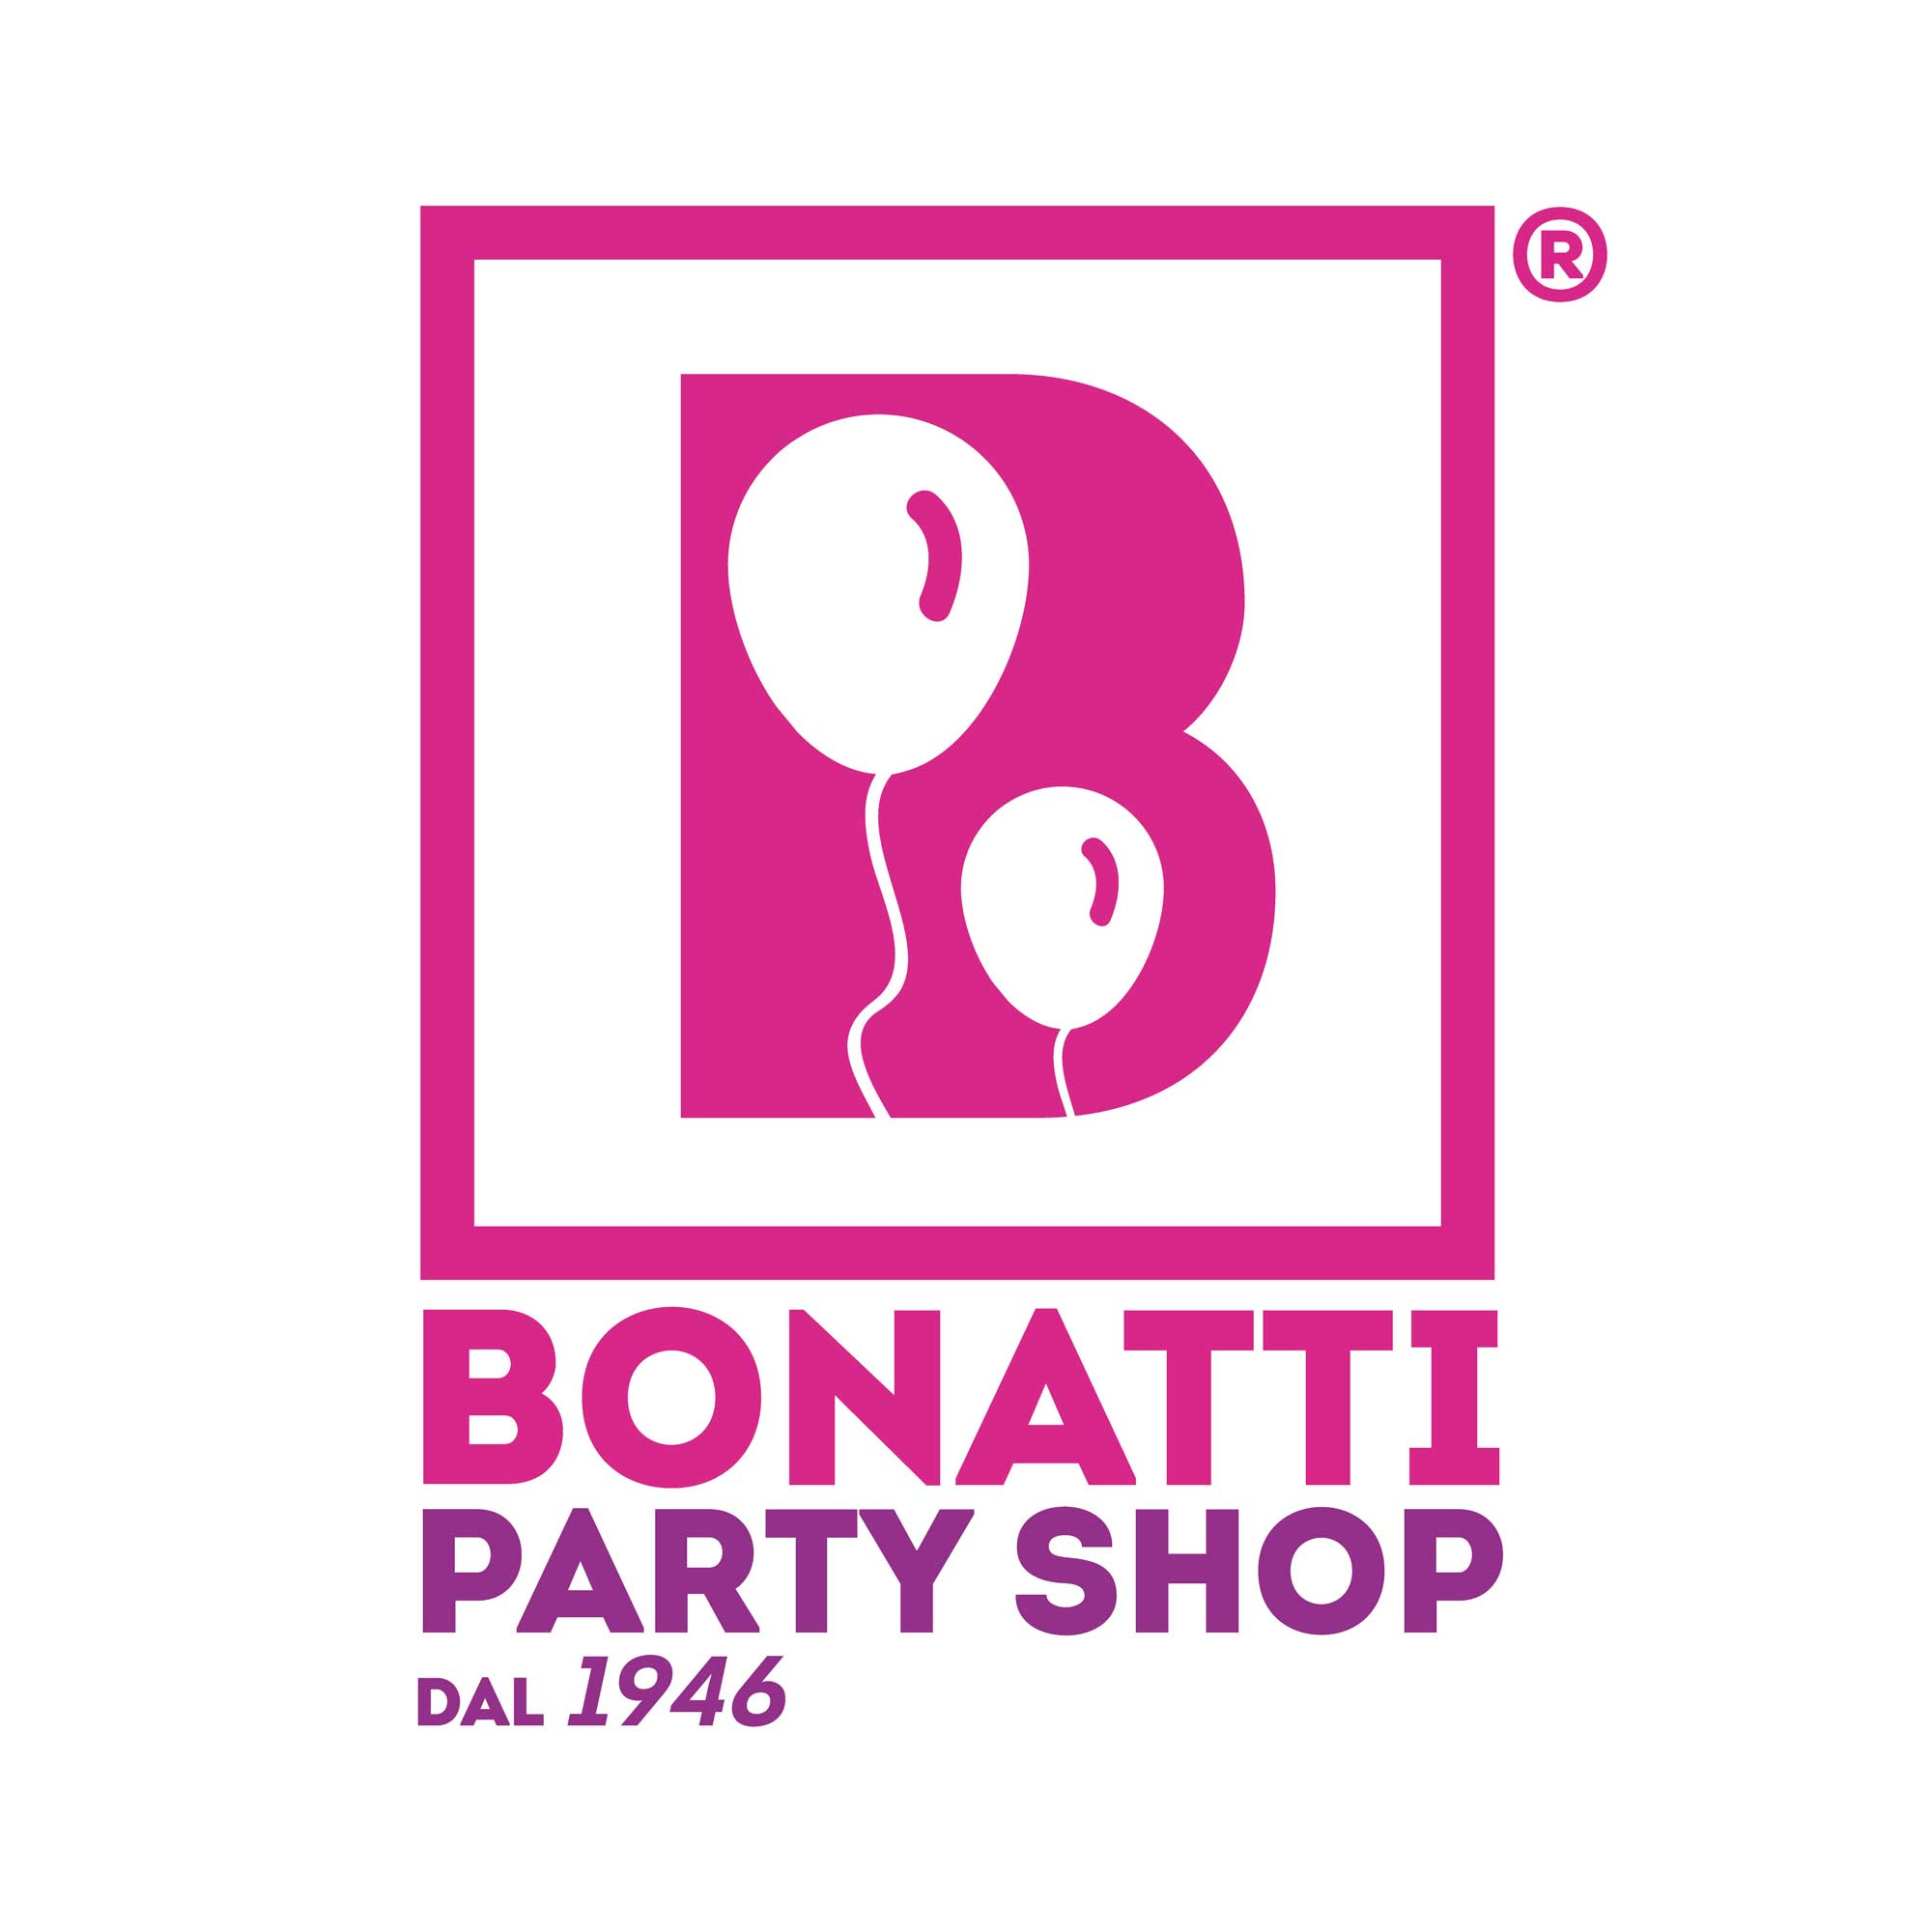 Bonatti Party Shop